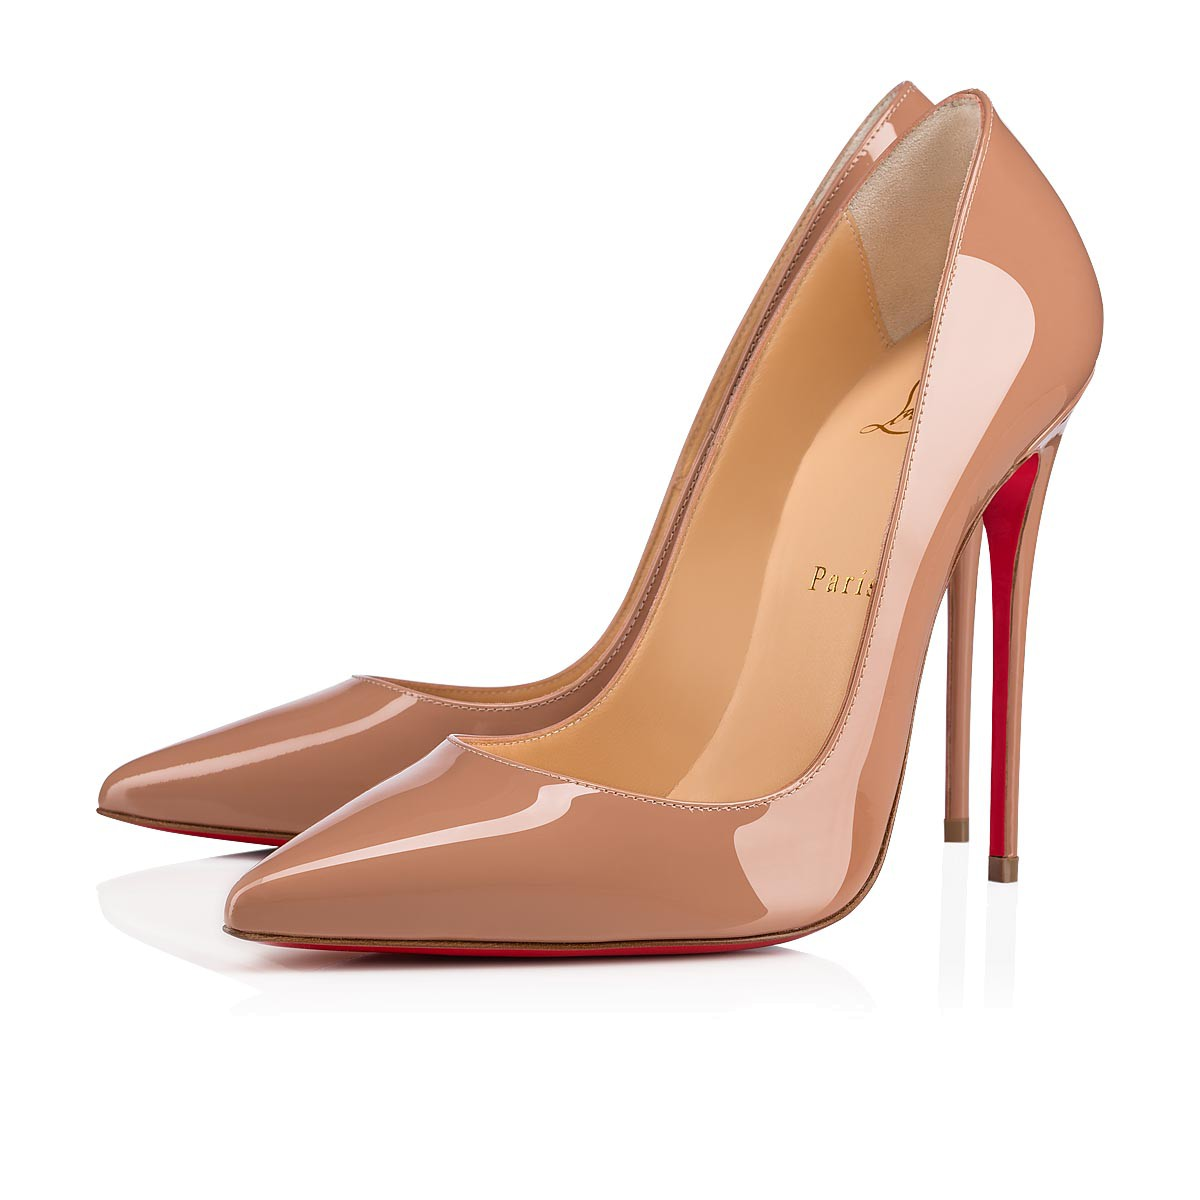 4557af121 So Kate 120 Nude Patent Leather - Women Shoes - Christian Louboutin